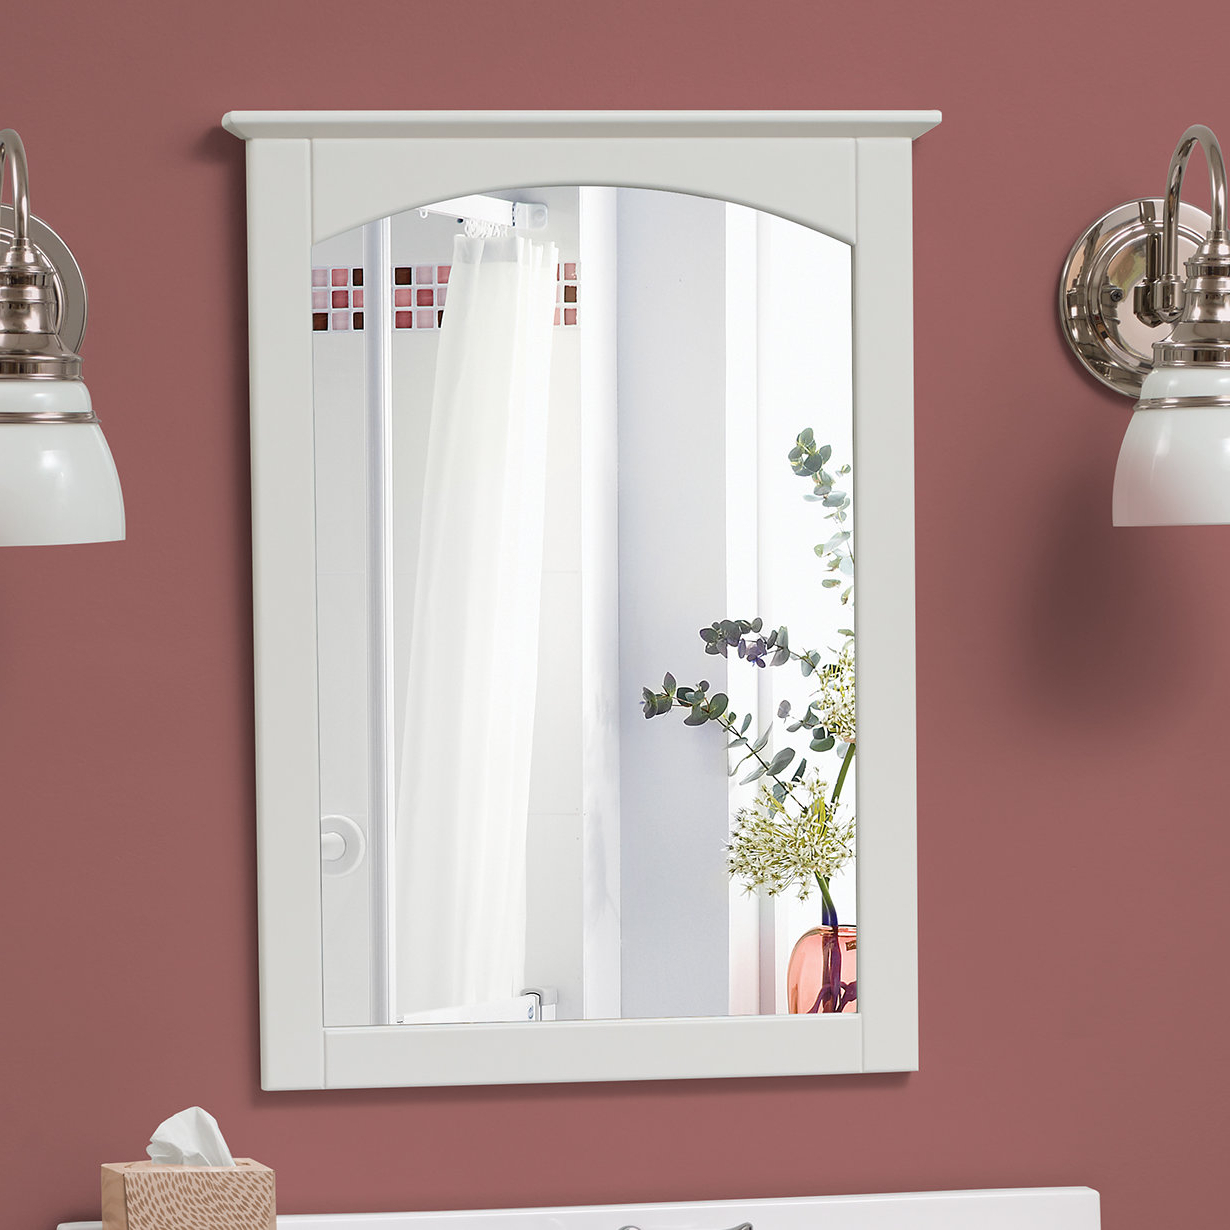 Burgoyne Vanity Mirrors With Latest Clarkfield Bathroom Accent Mirror (View 11 of 20)